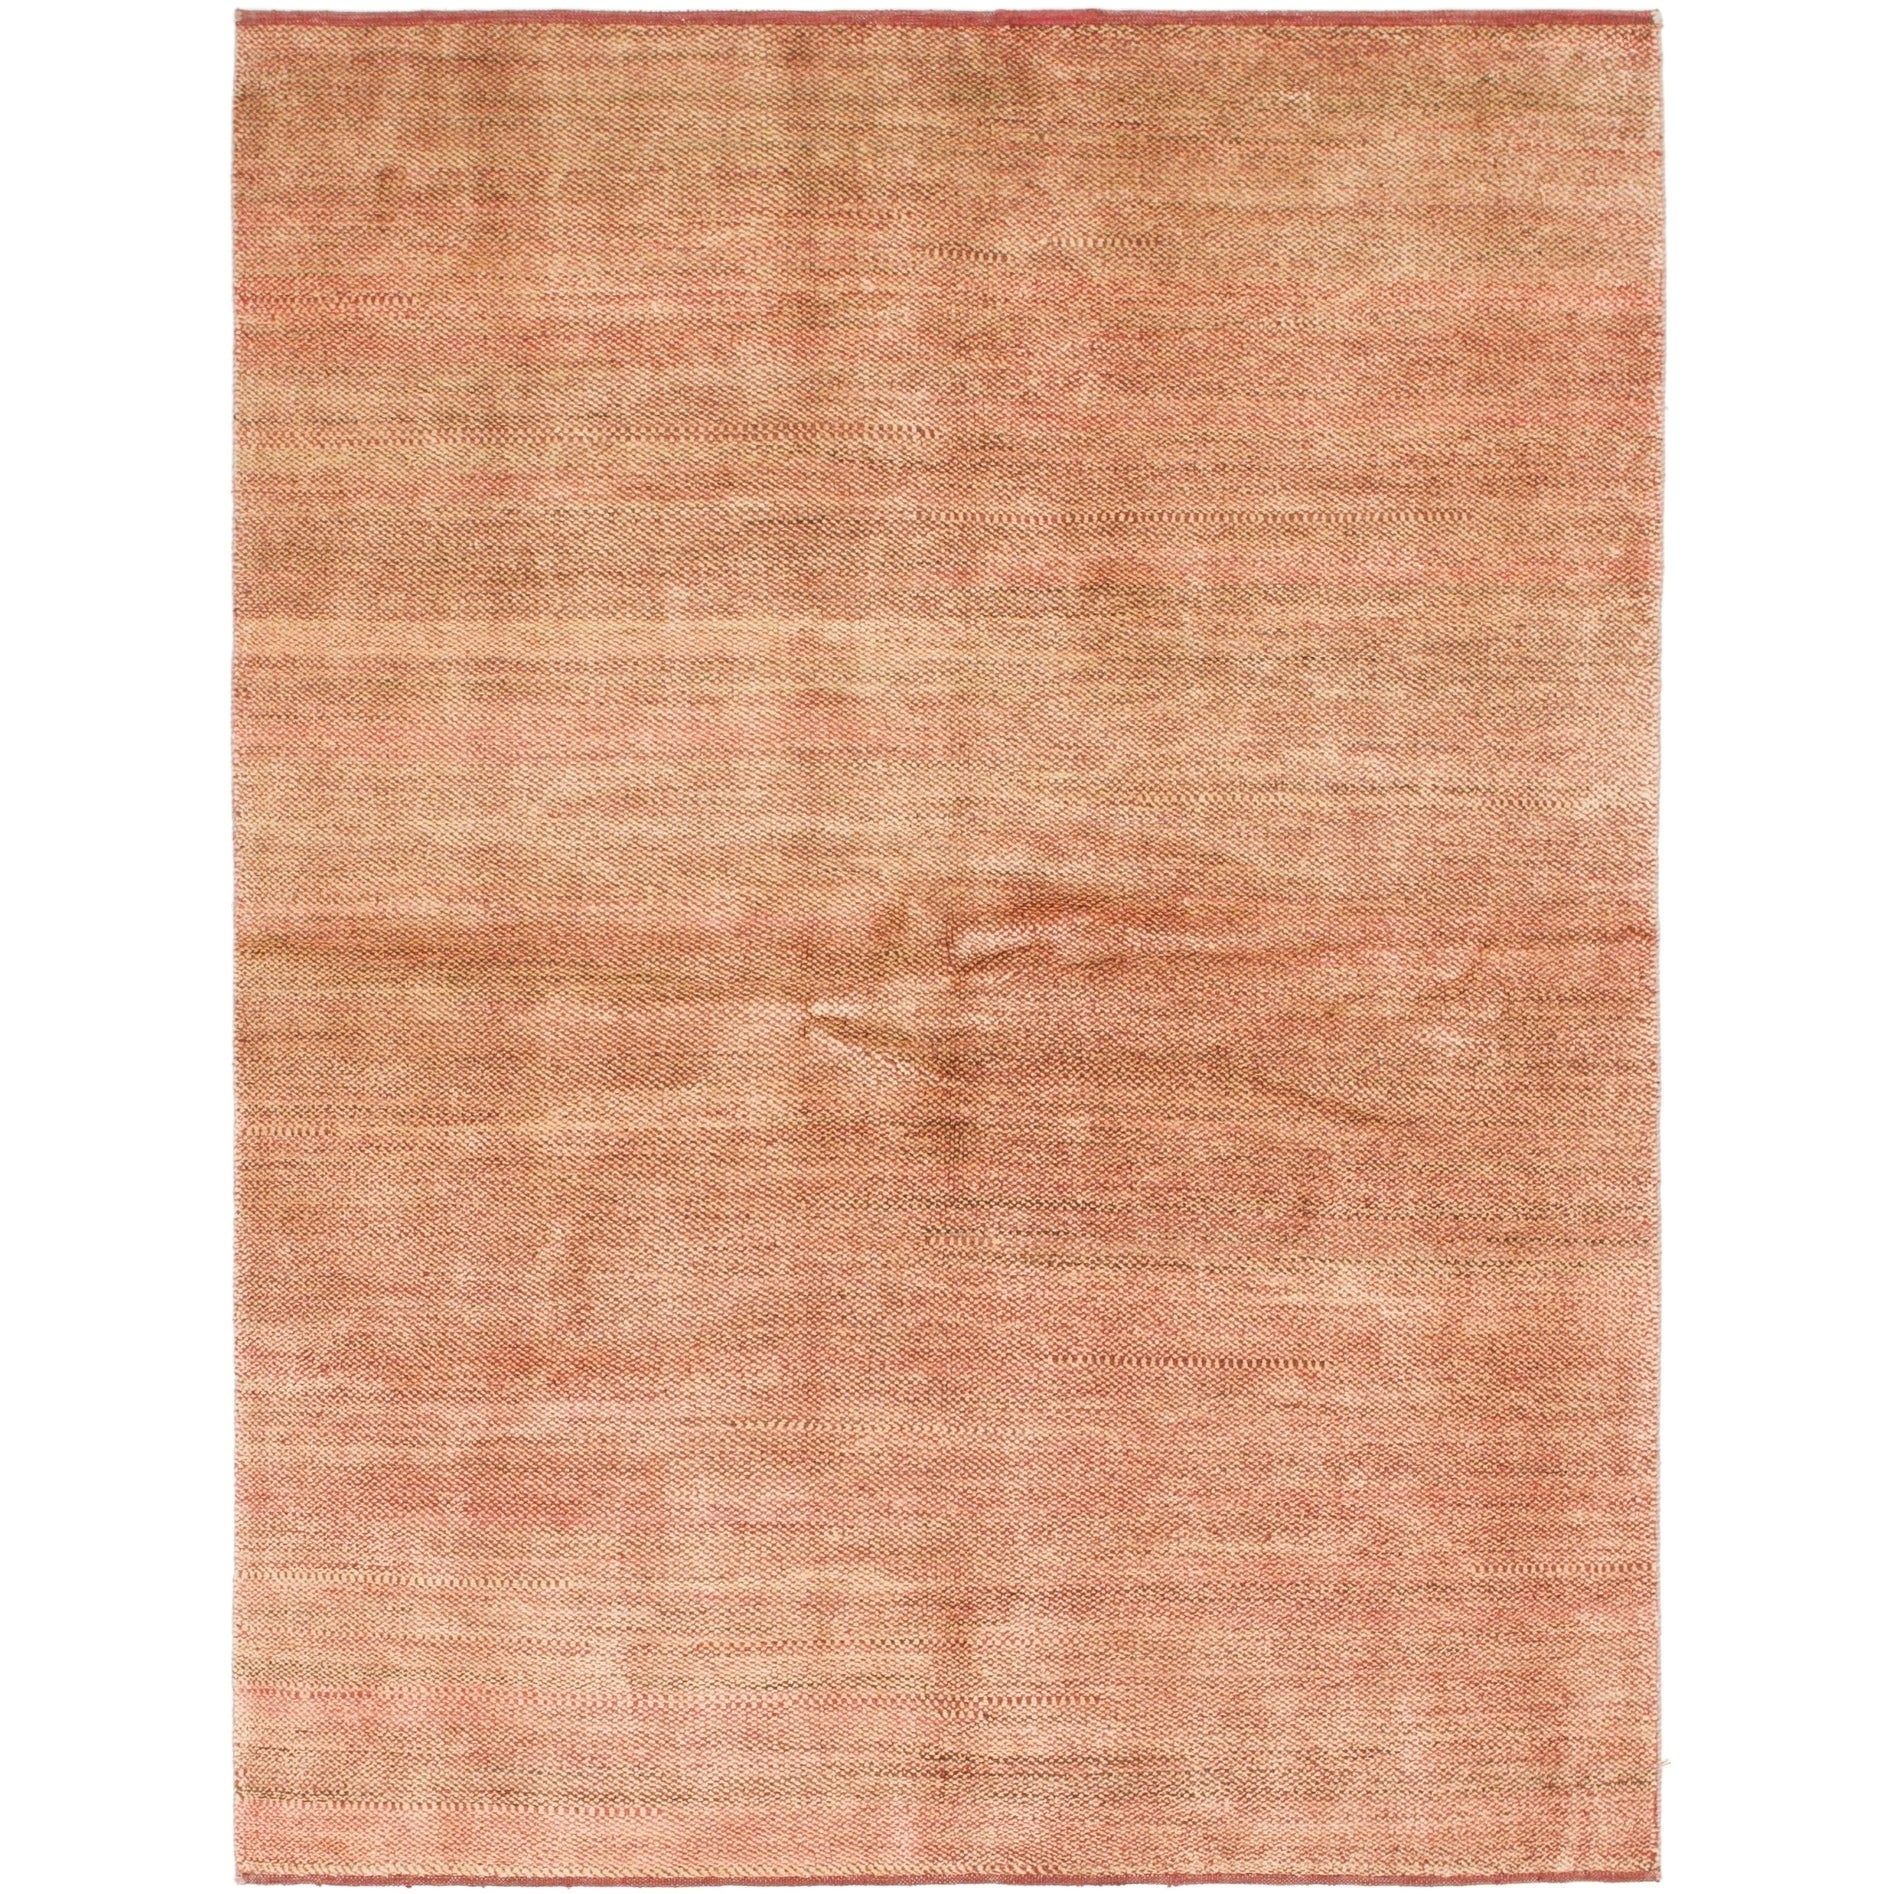 Hand Knotted Kashkuli Gabbeh Wool Area Rug - 5 5 x 7 2 (puce - 5 5 x 7 2)